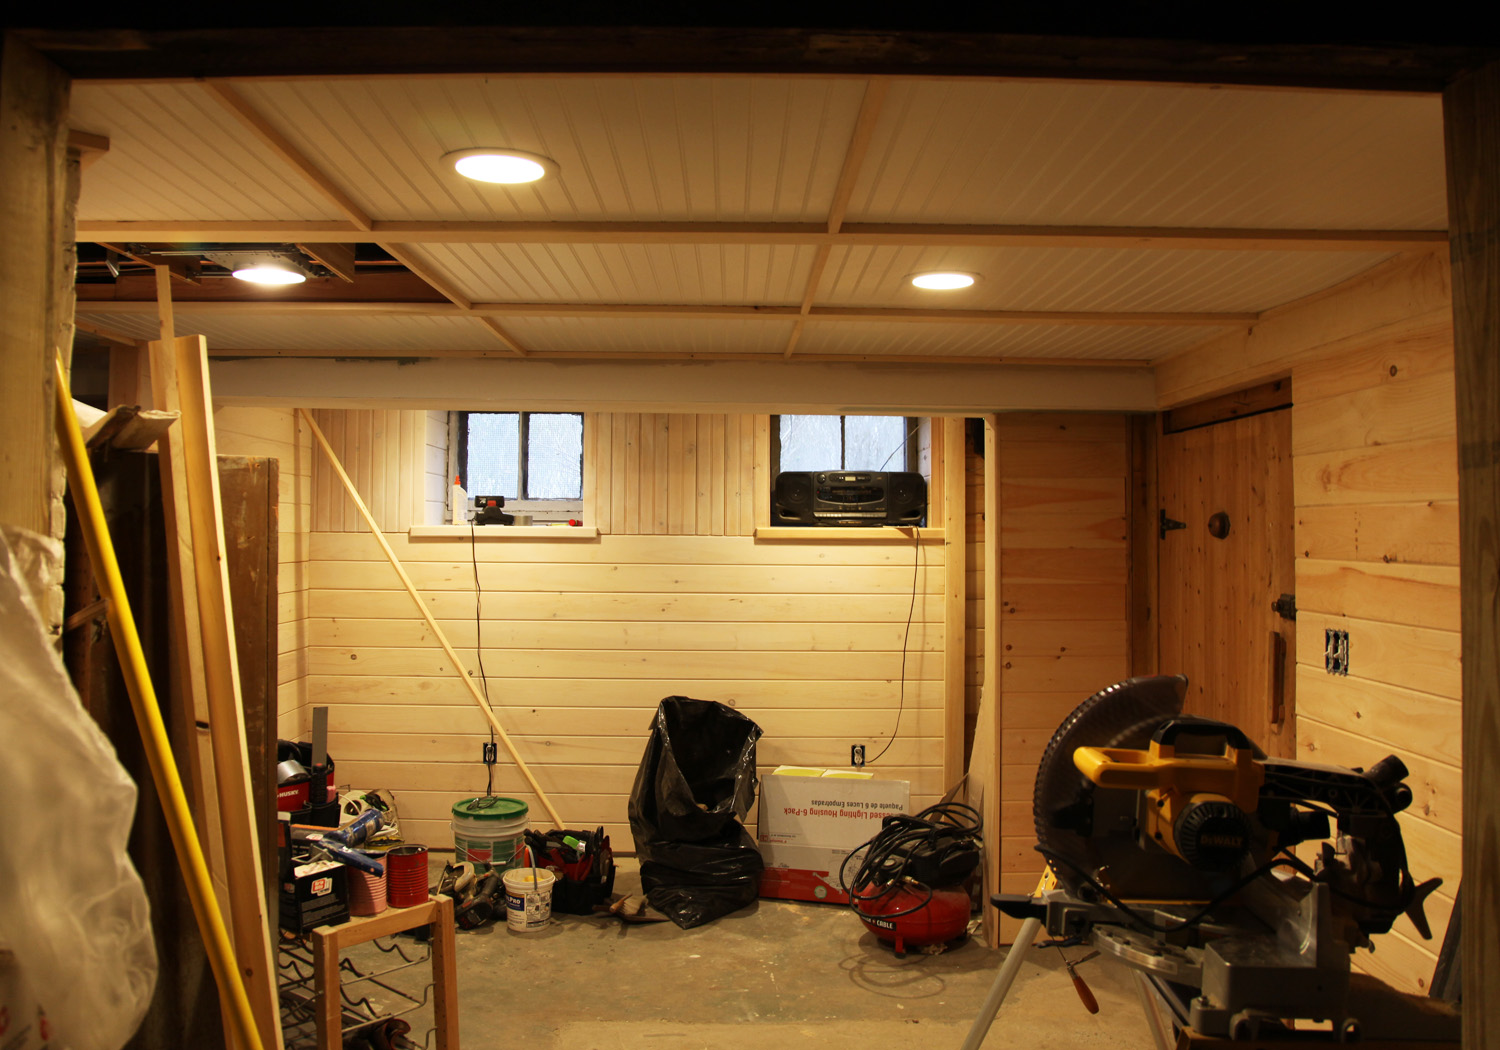 Choose Minimalist Basement Ceiling Ideas with Bright Planted Lamps and Wood Panels above Concrete Flooring